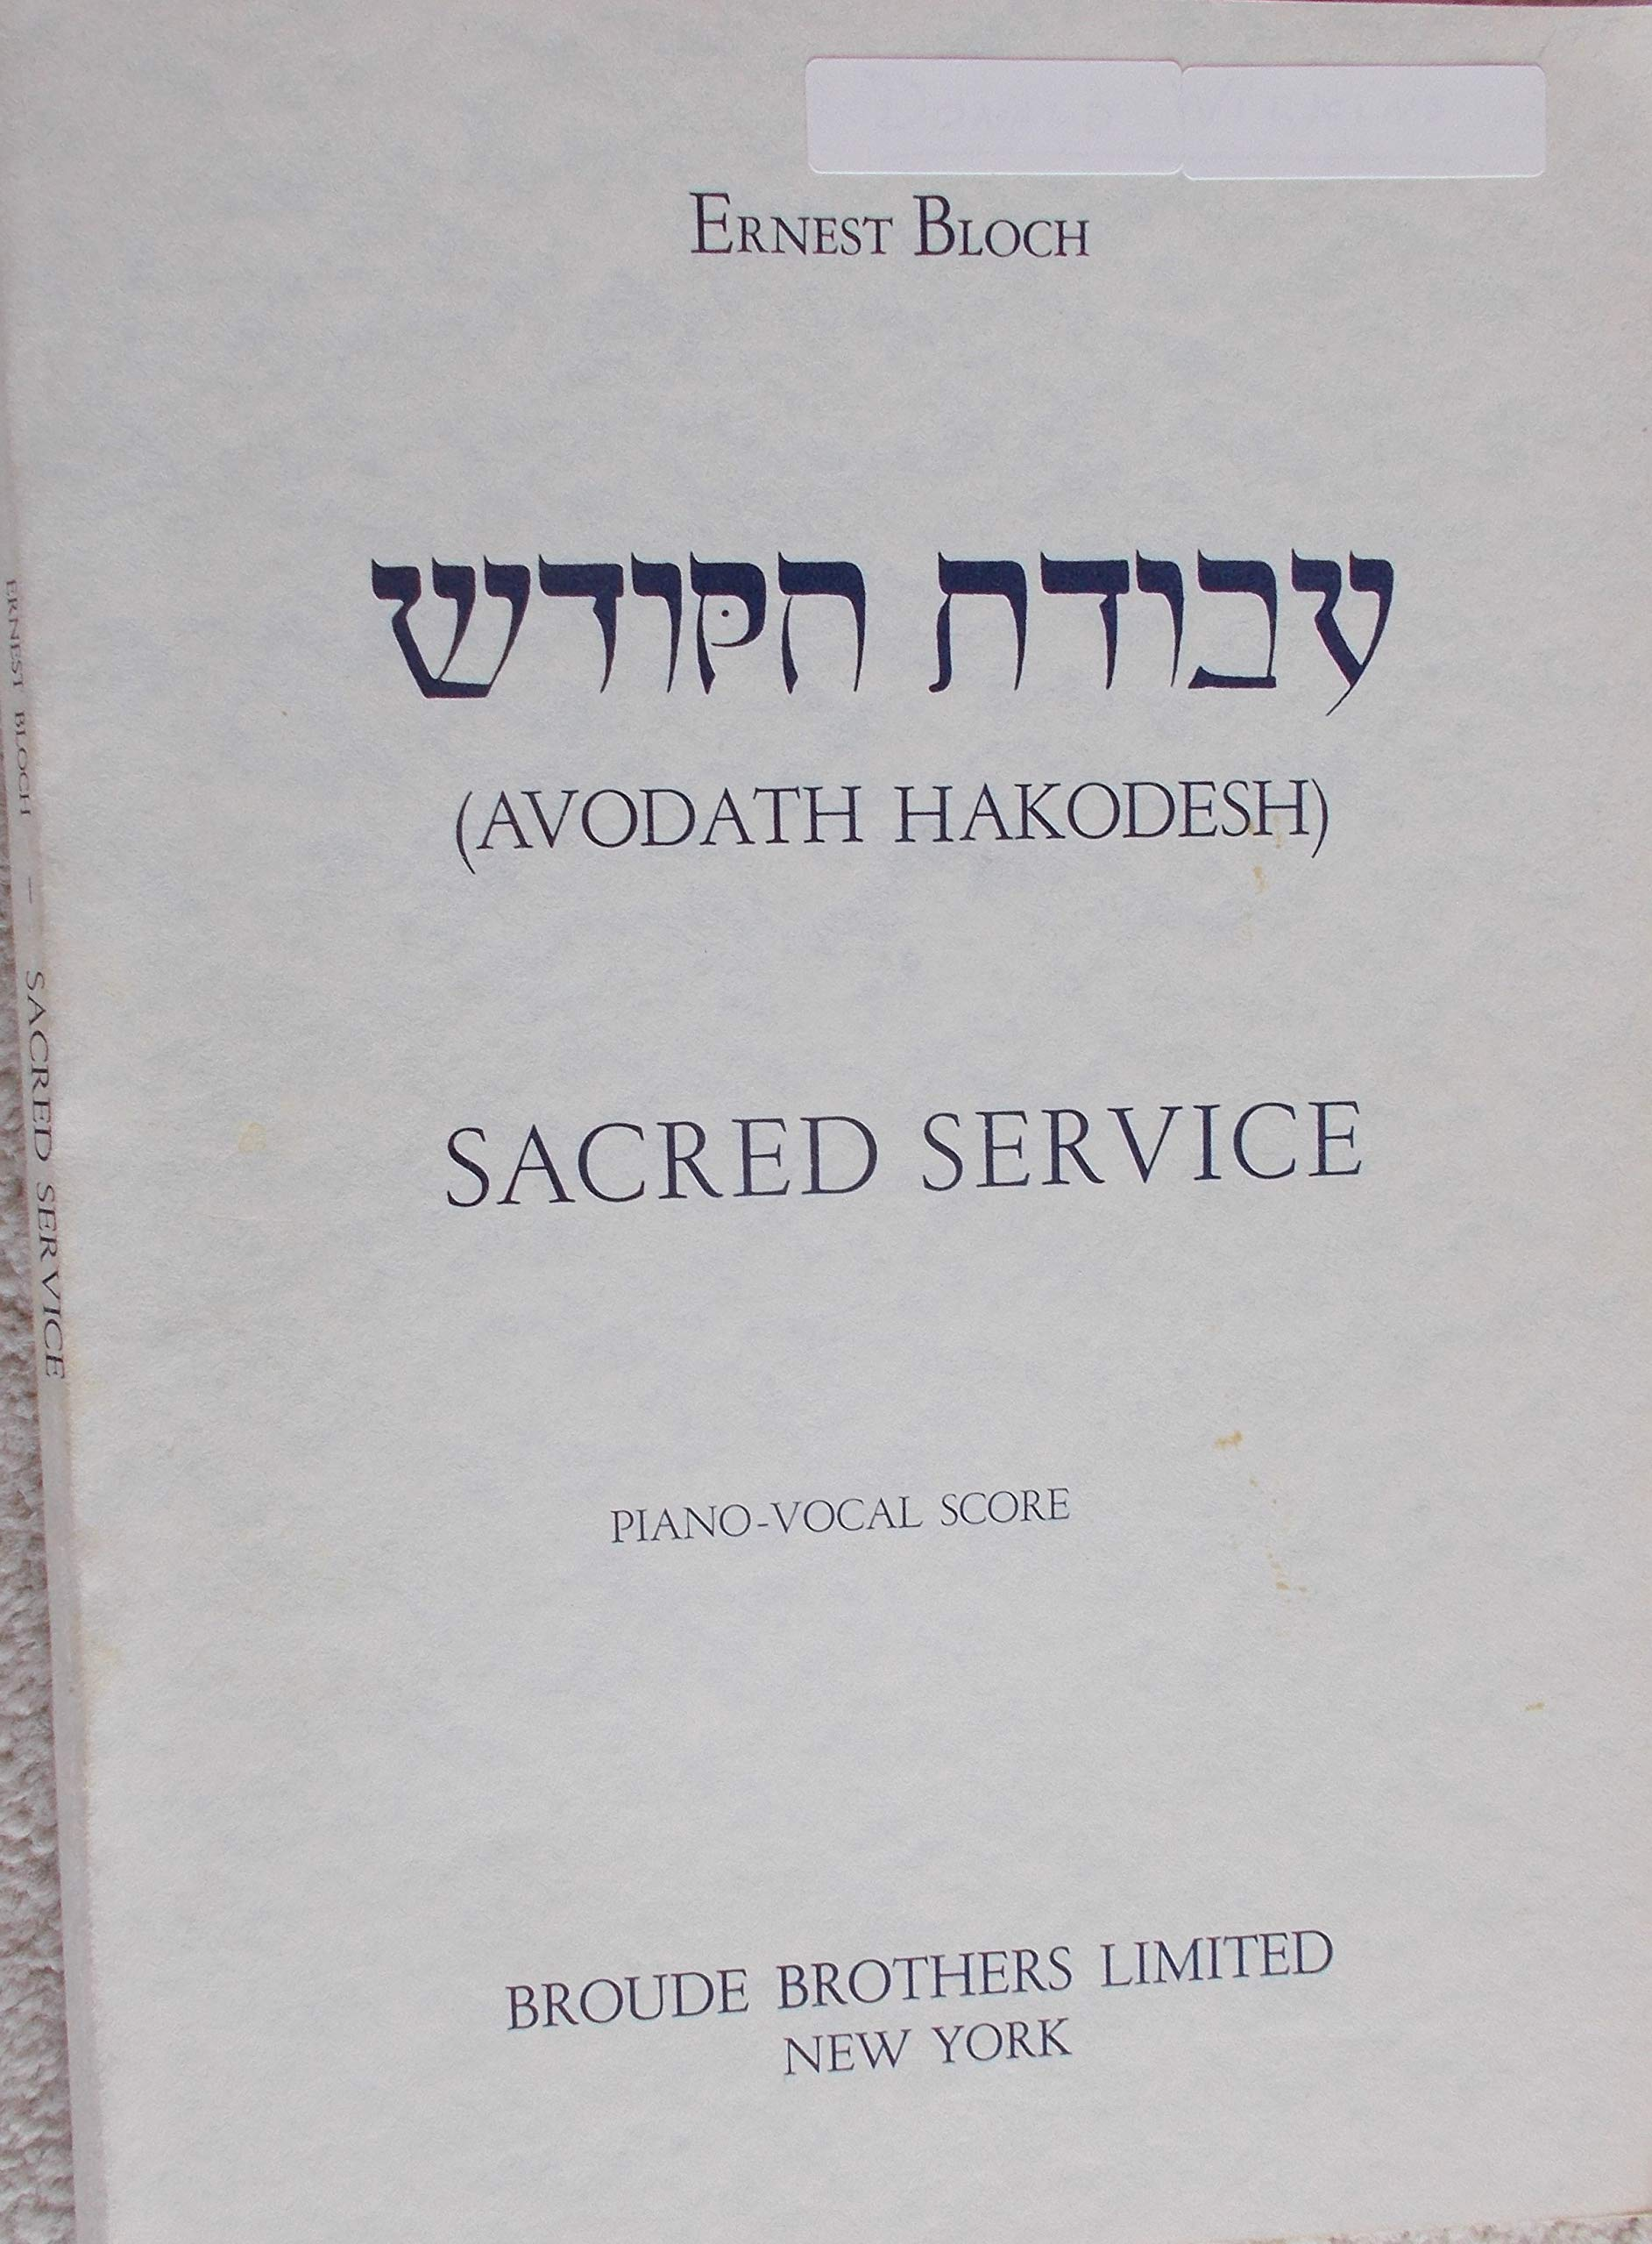 Sacred Service (Avodath Hakodesh). Piano Vocal Score SATB: Ernest Bloch, David Stevens: Amazon.com: Books